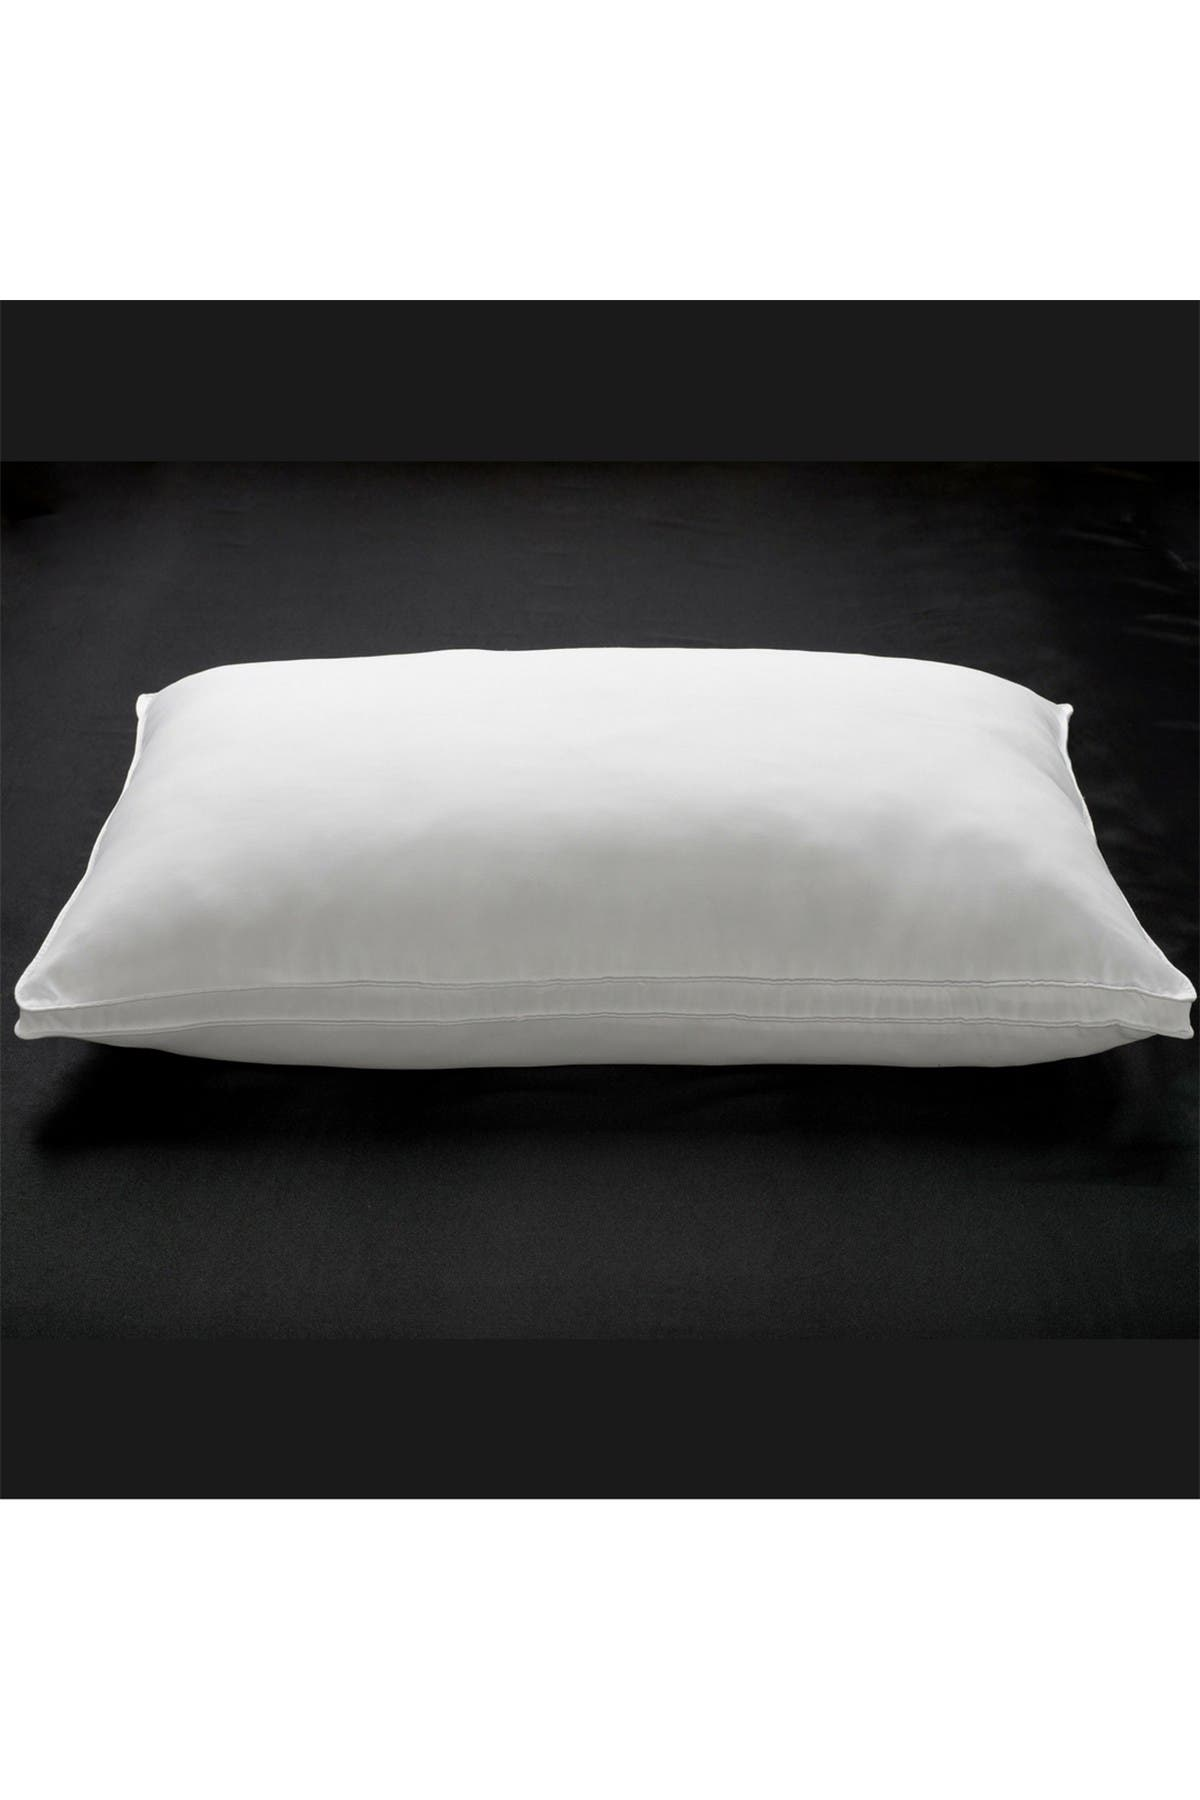 """Image of Ella Jayne Home Soft Luxury Plush Gusseted Soft Gel Filled Stomach Sleeper Standard Pillow - 20""""x25"""""""